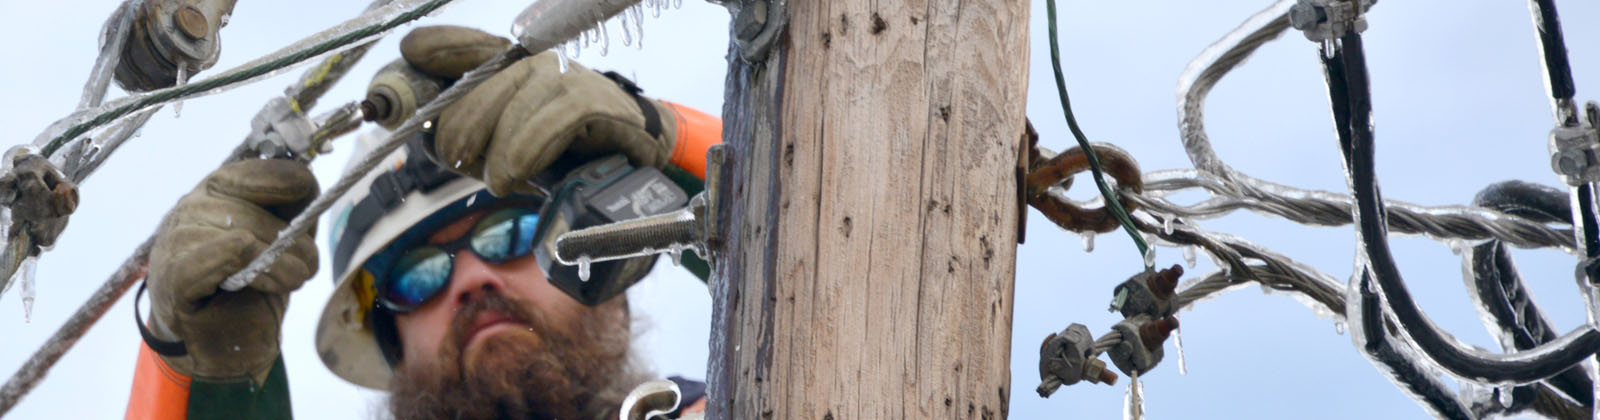 Photograph of lineworker fixing power lines.